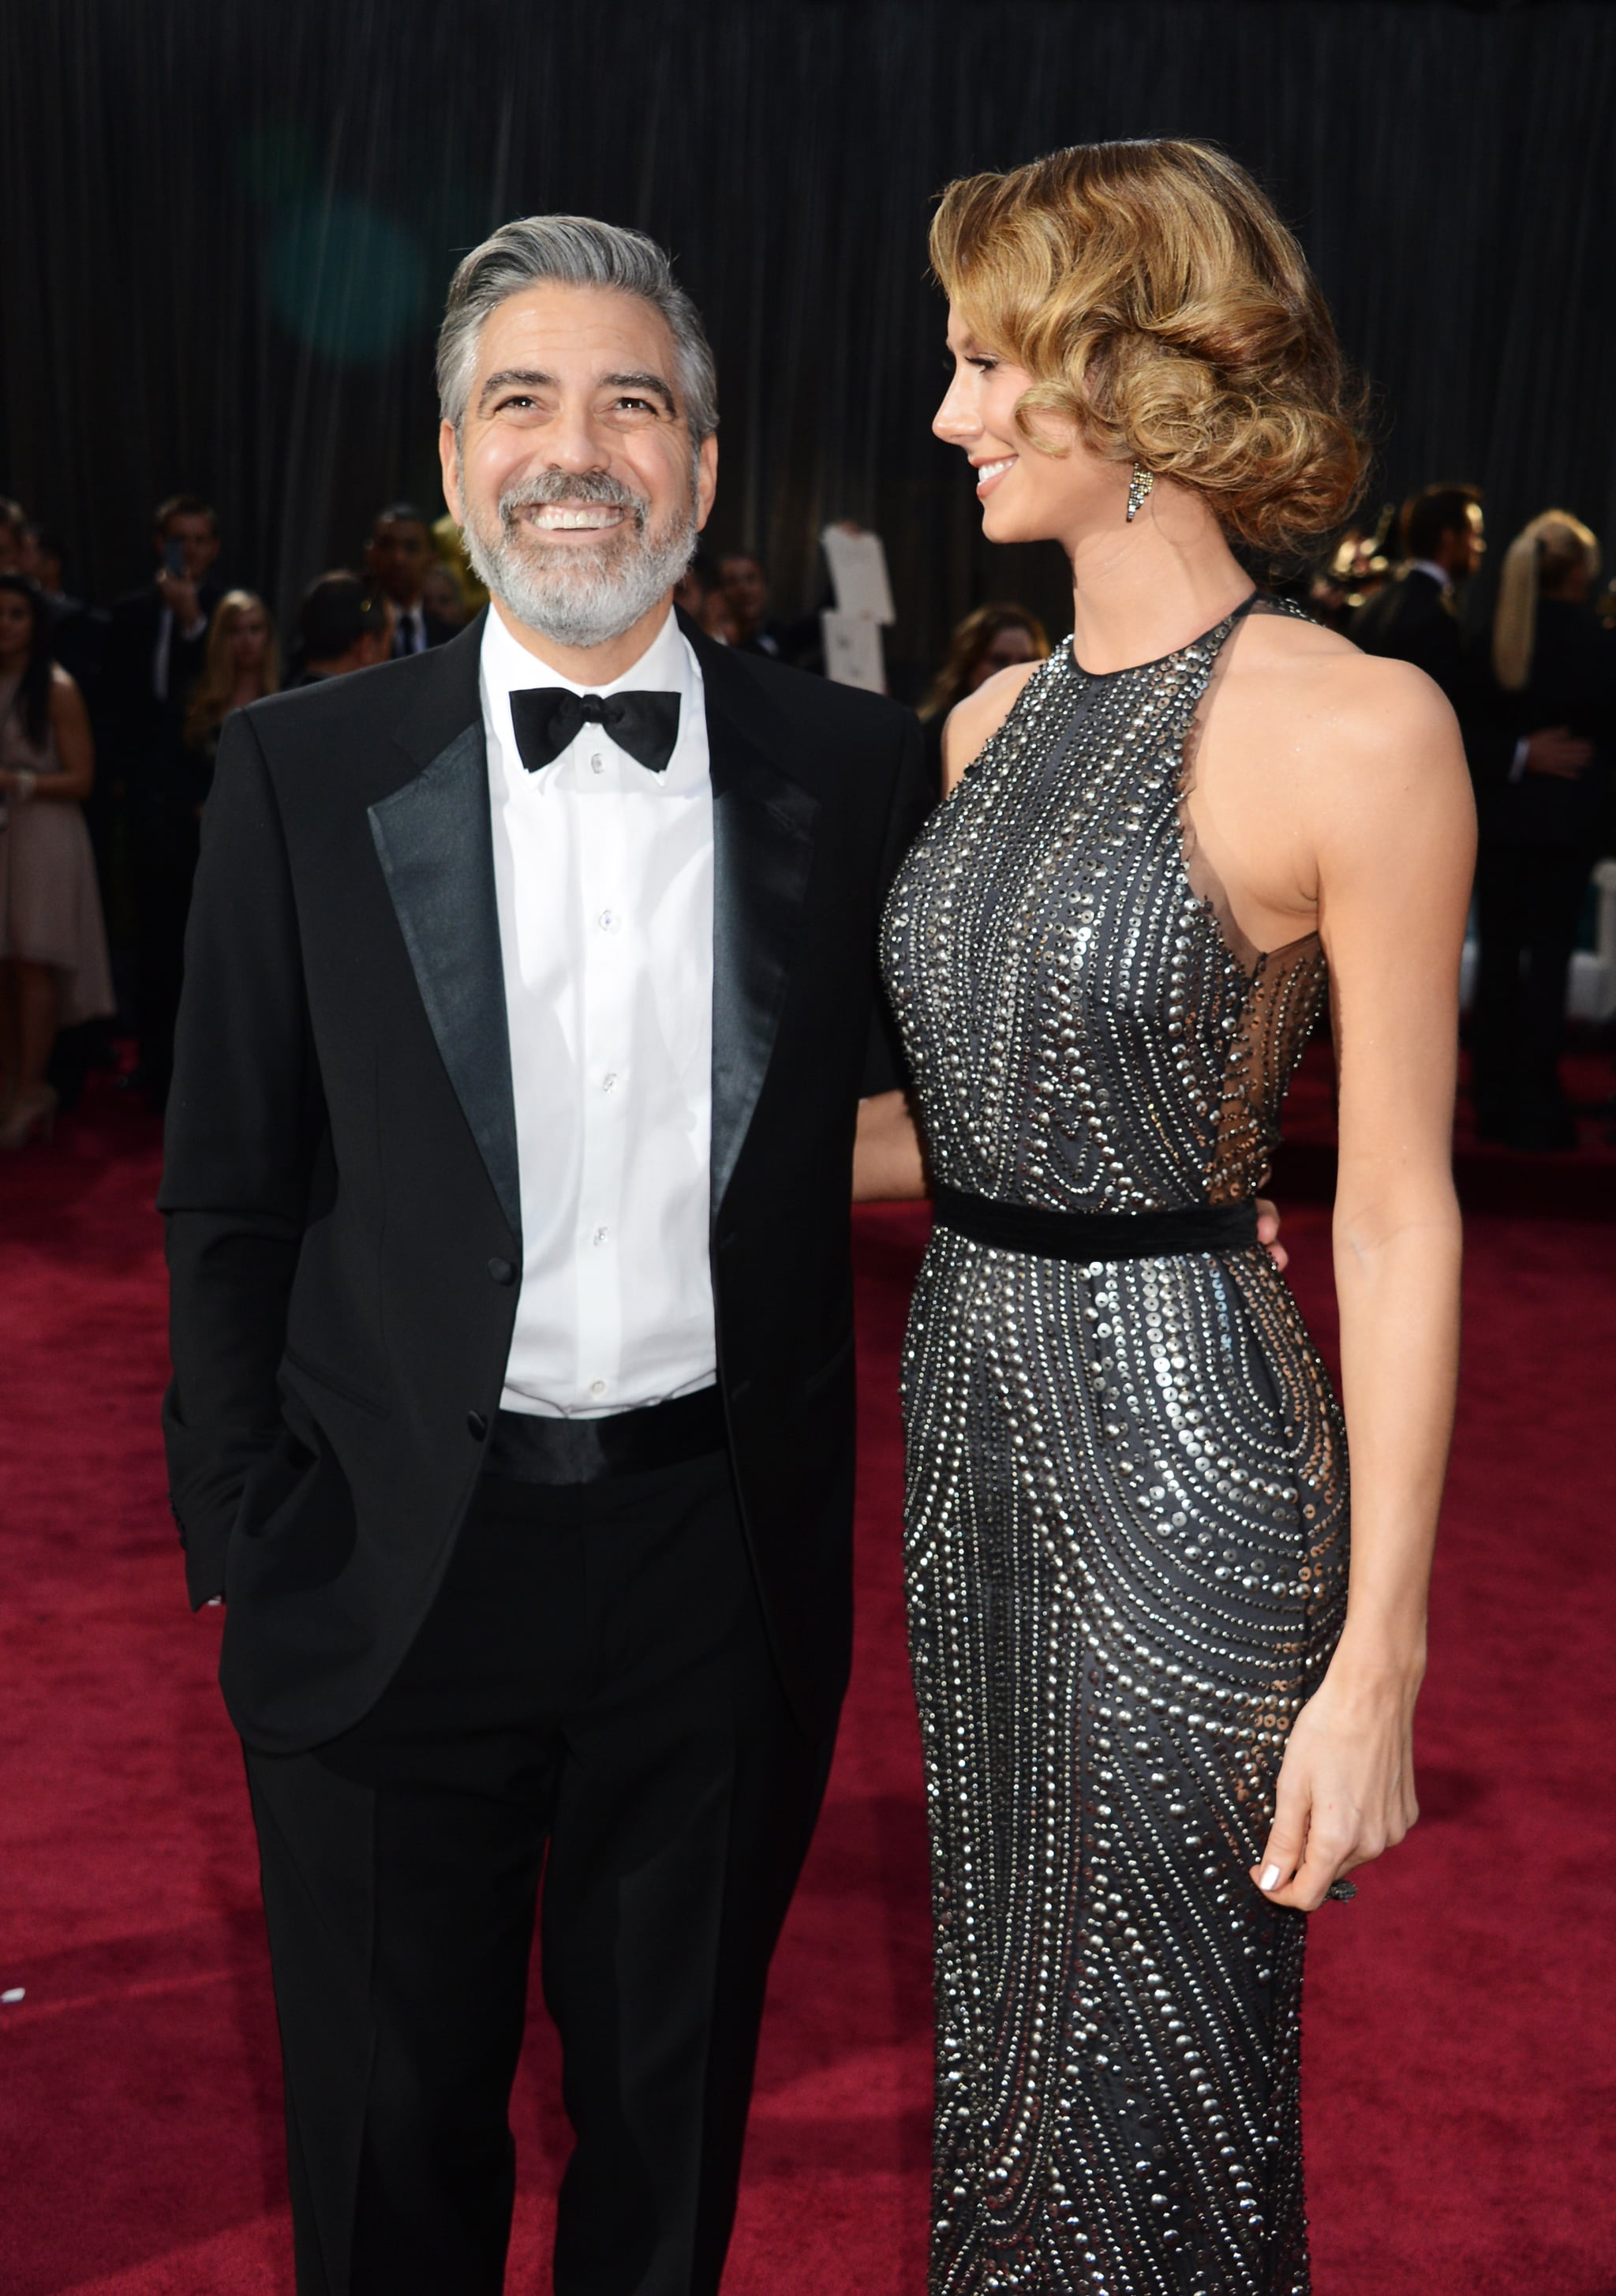 Stacy Keibler couldn't take her eyes off of George Clooney on the red carpet.